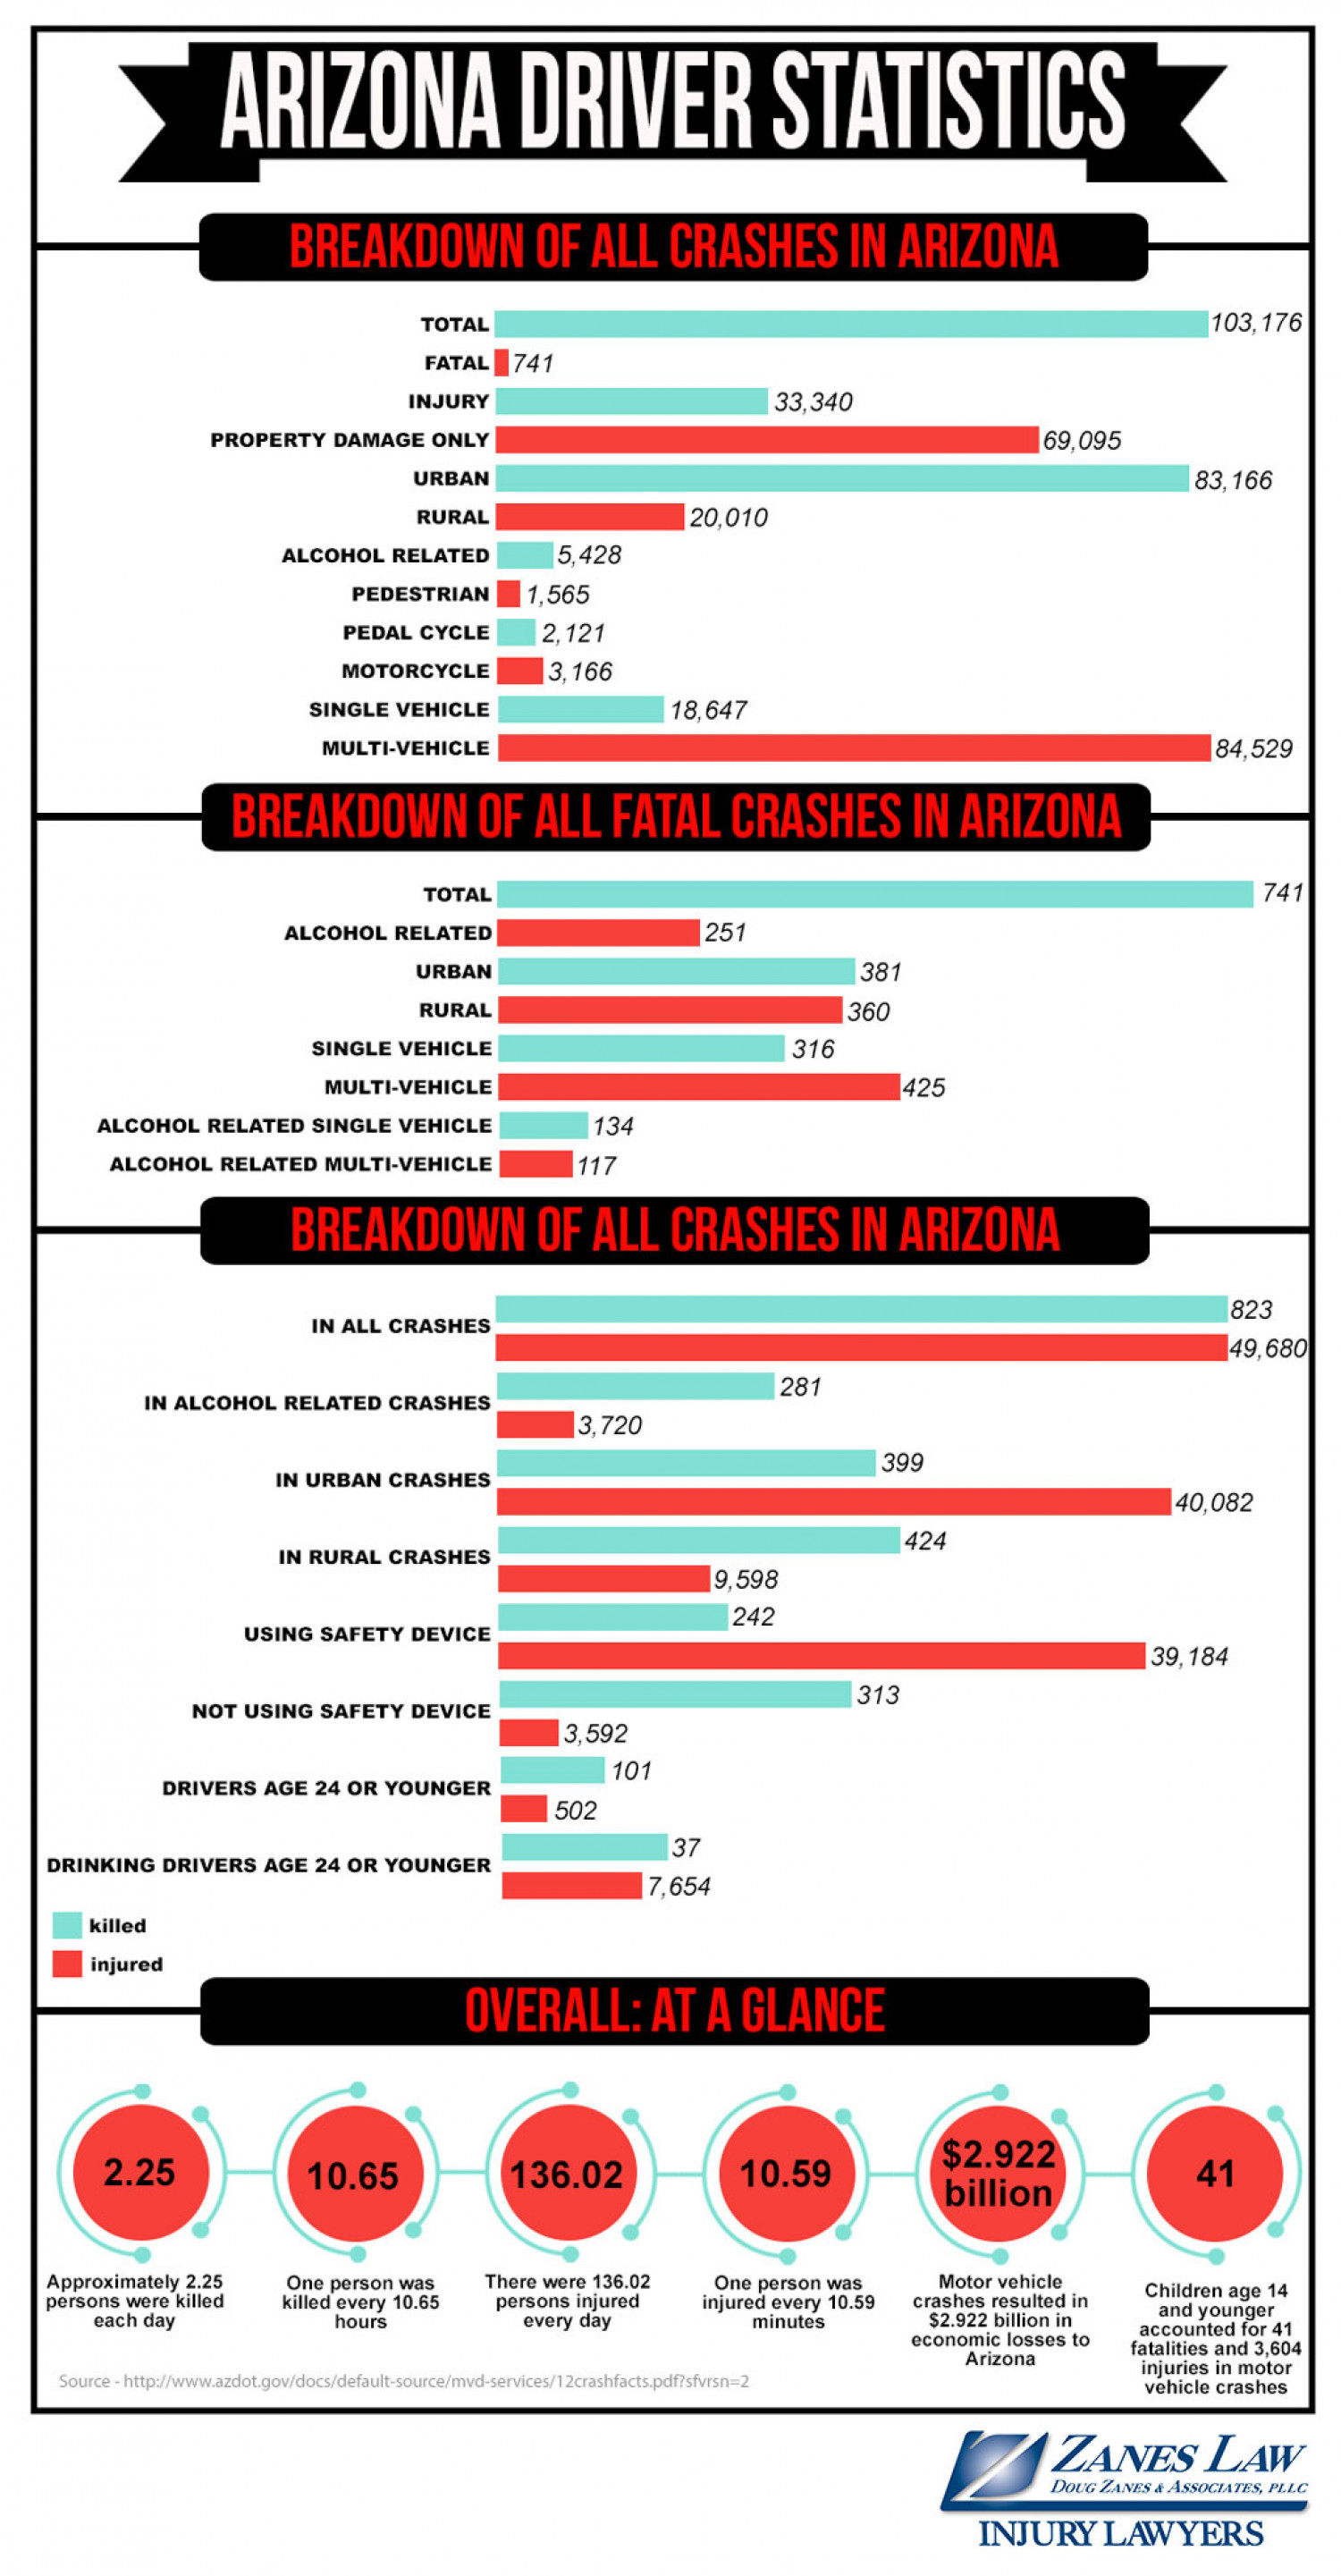 2012 Arizona Car Crash Statistics Infographic